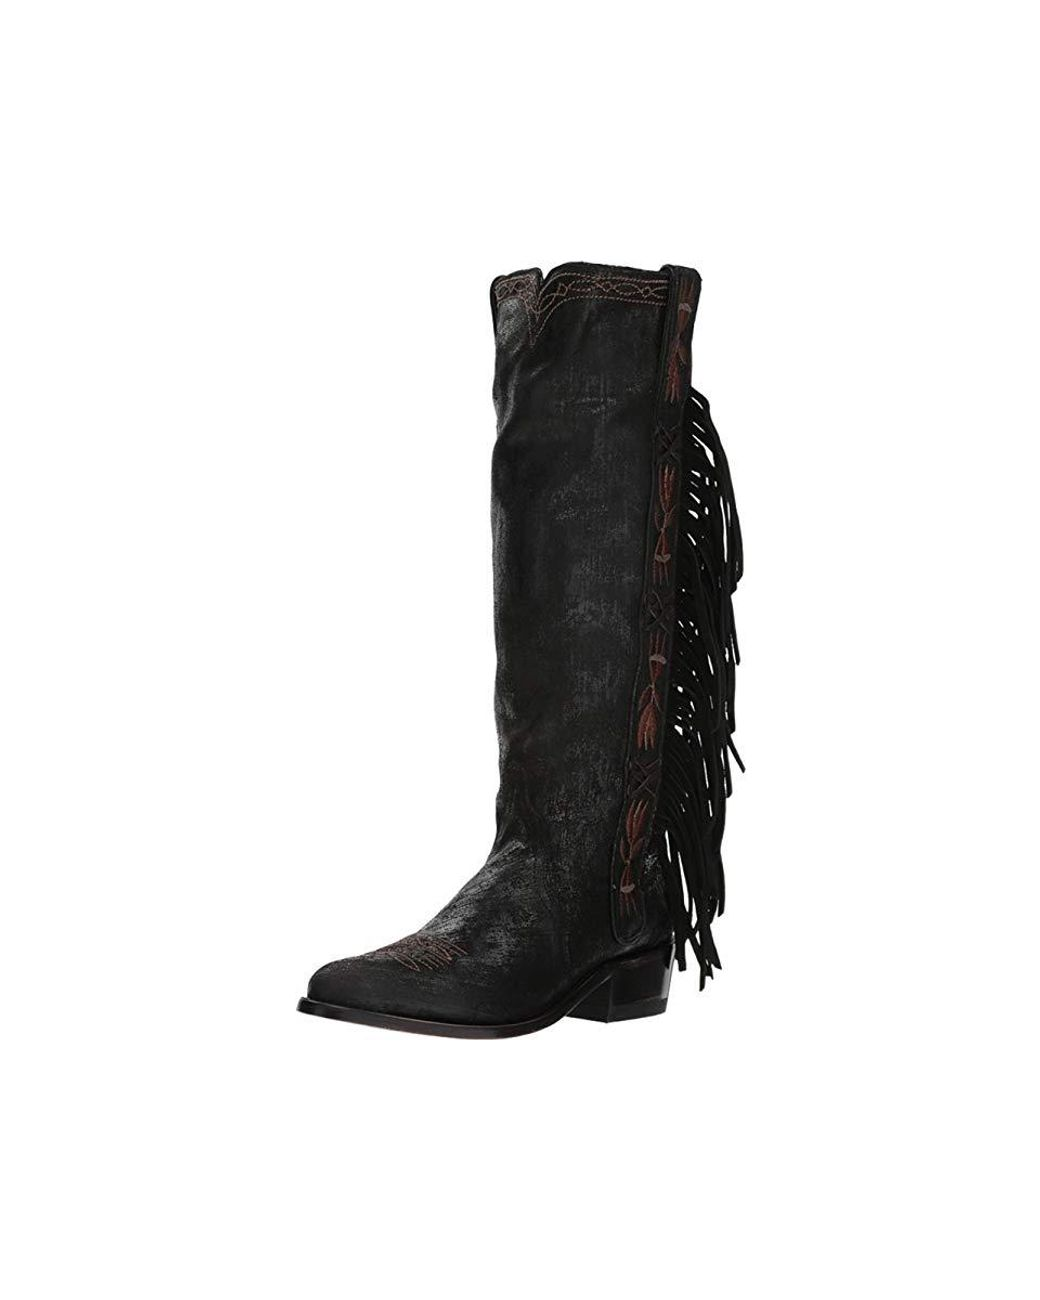 43ea18ee252 Old Gringo Acoma Tall (black) Cowboy Boots in Black - Save 29% - Lyst